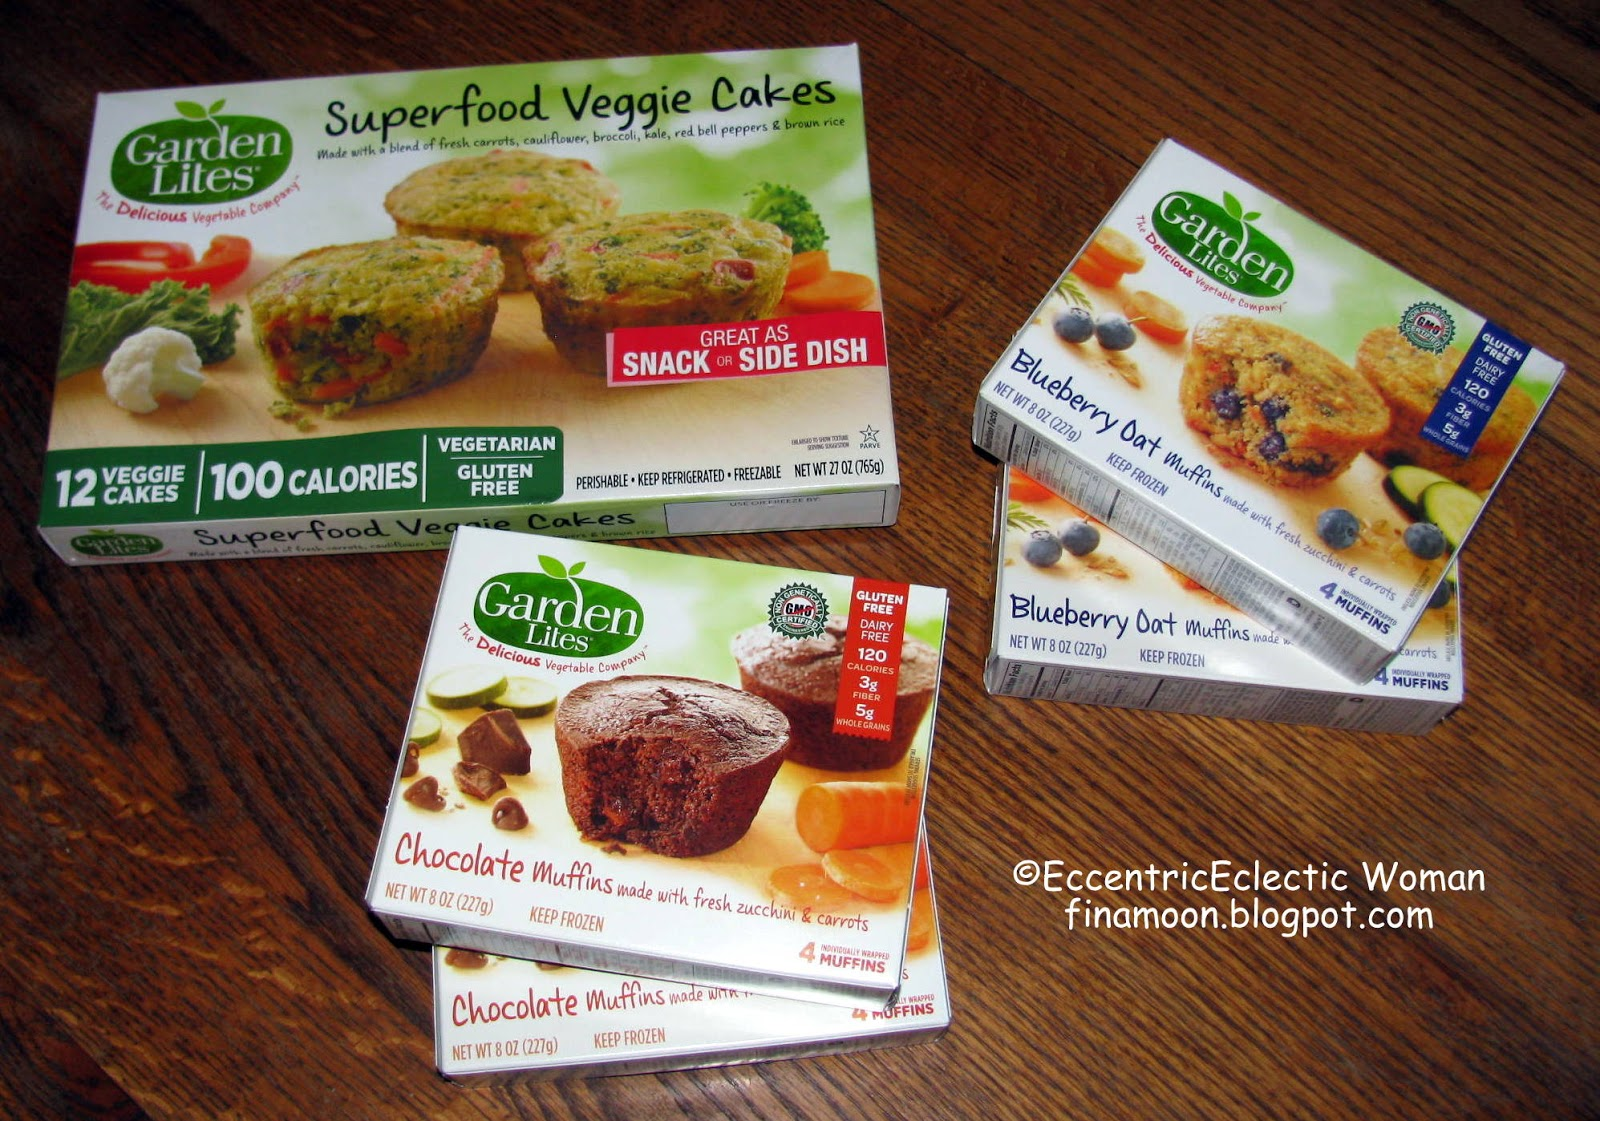 Eccentric Eclectic Woman Garden Lites Superfood Veggie Cakes Now At Northwest Costco Stores